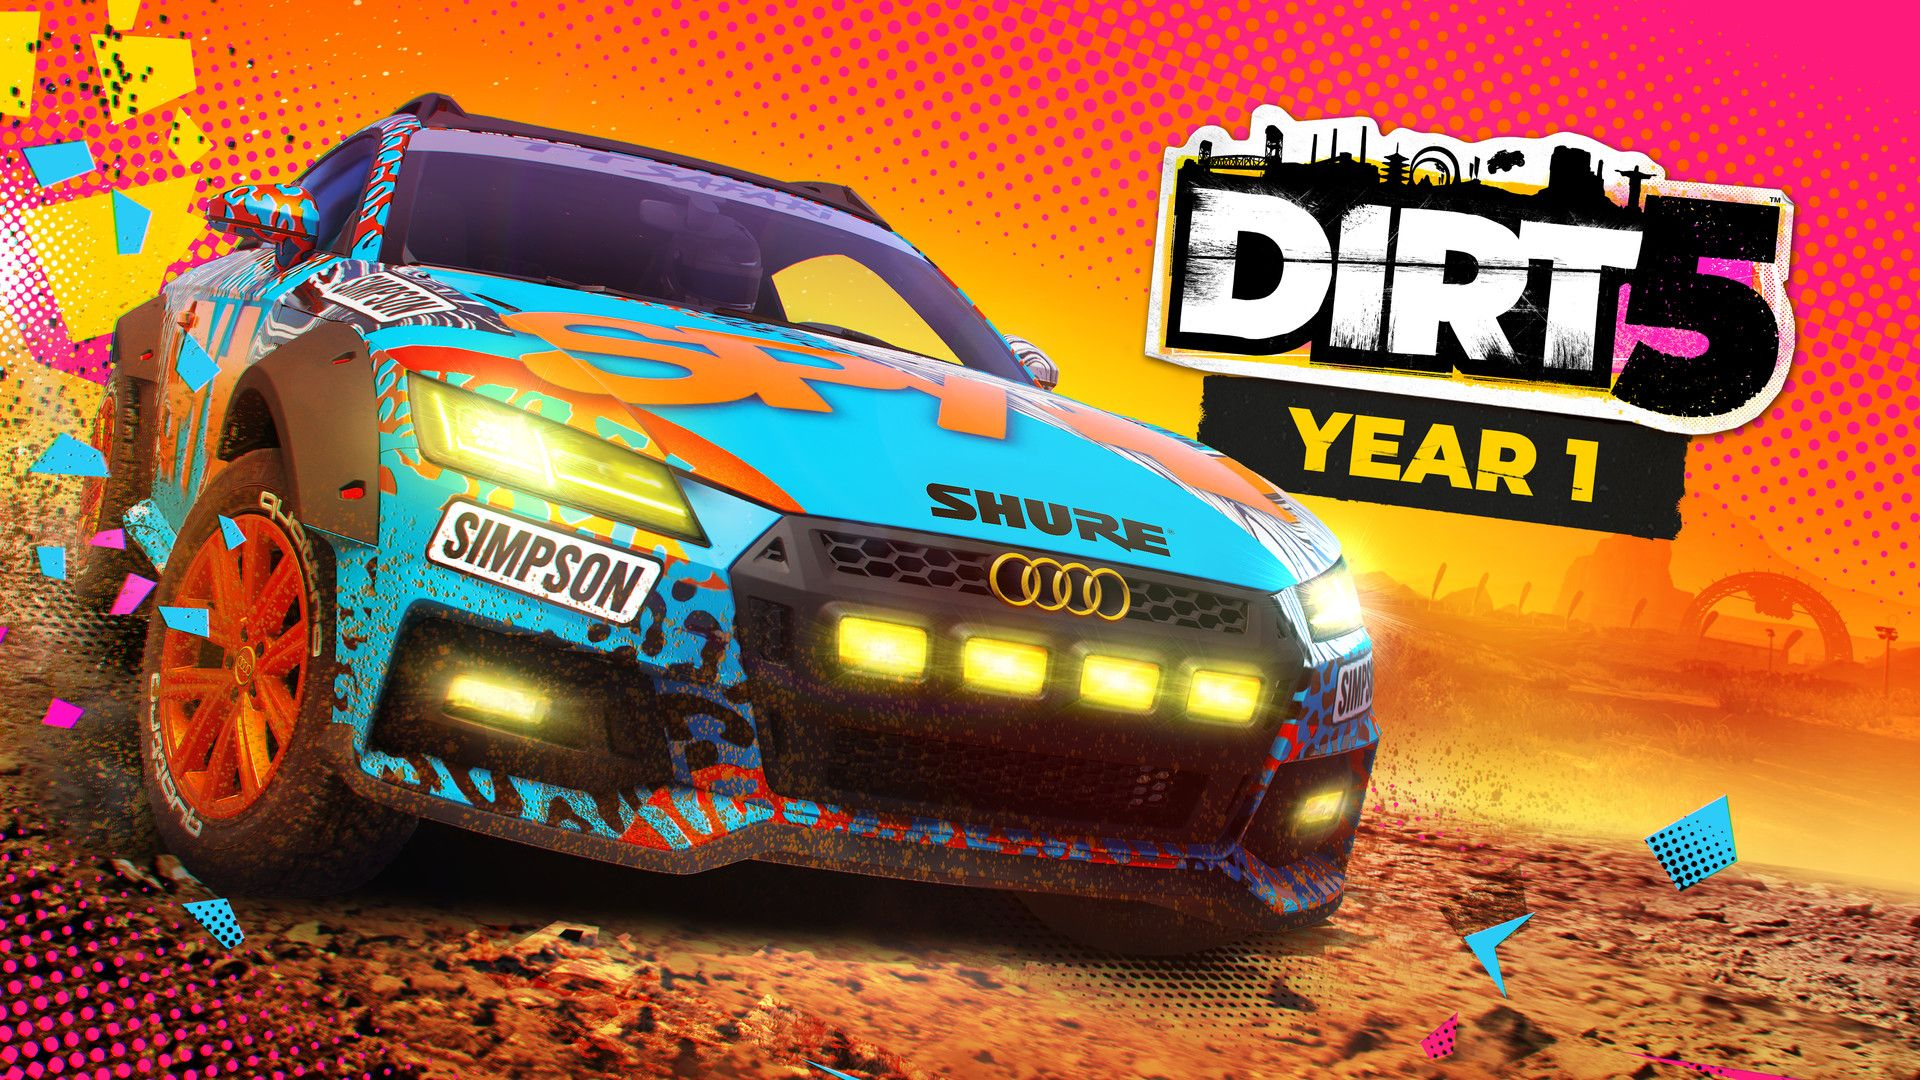 DIRT 5 - Year 1 Upgrade